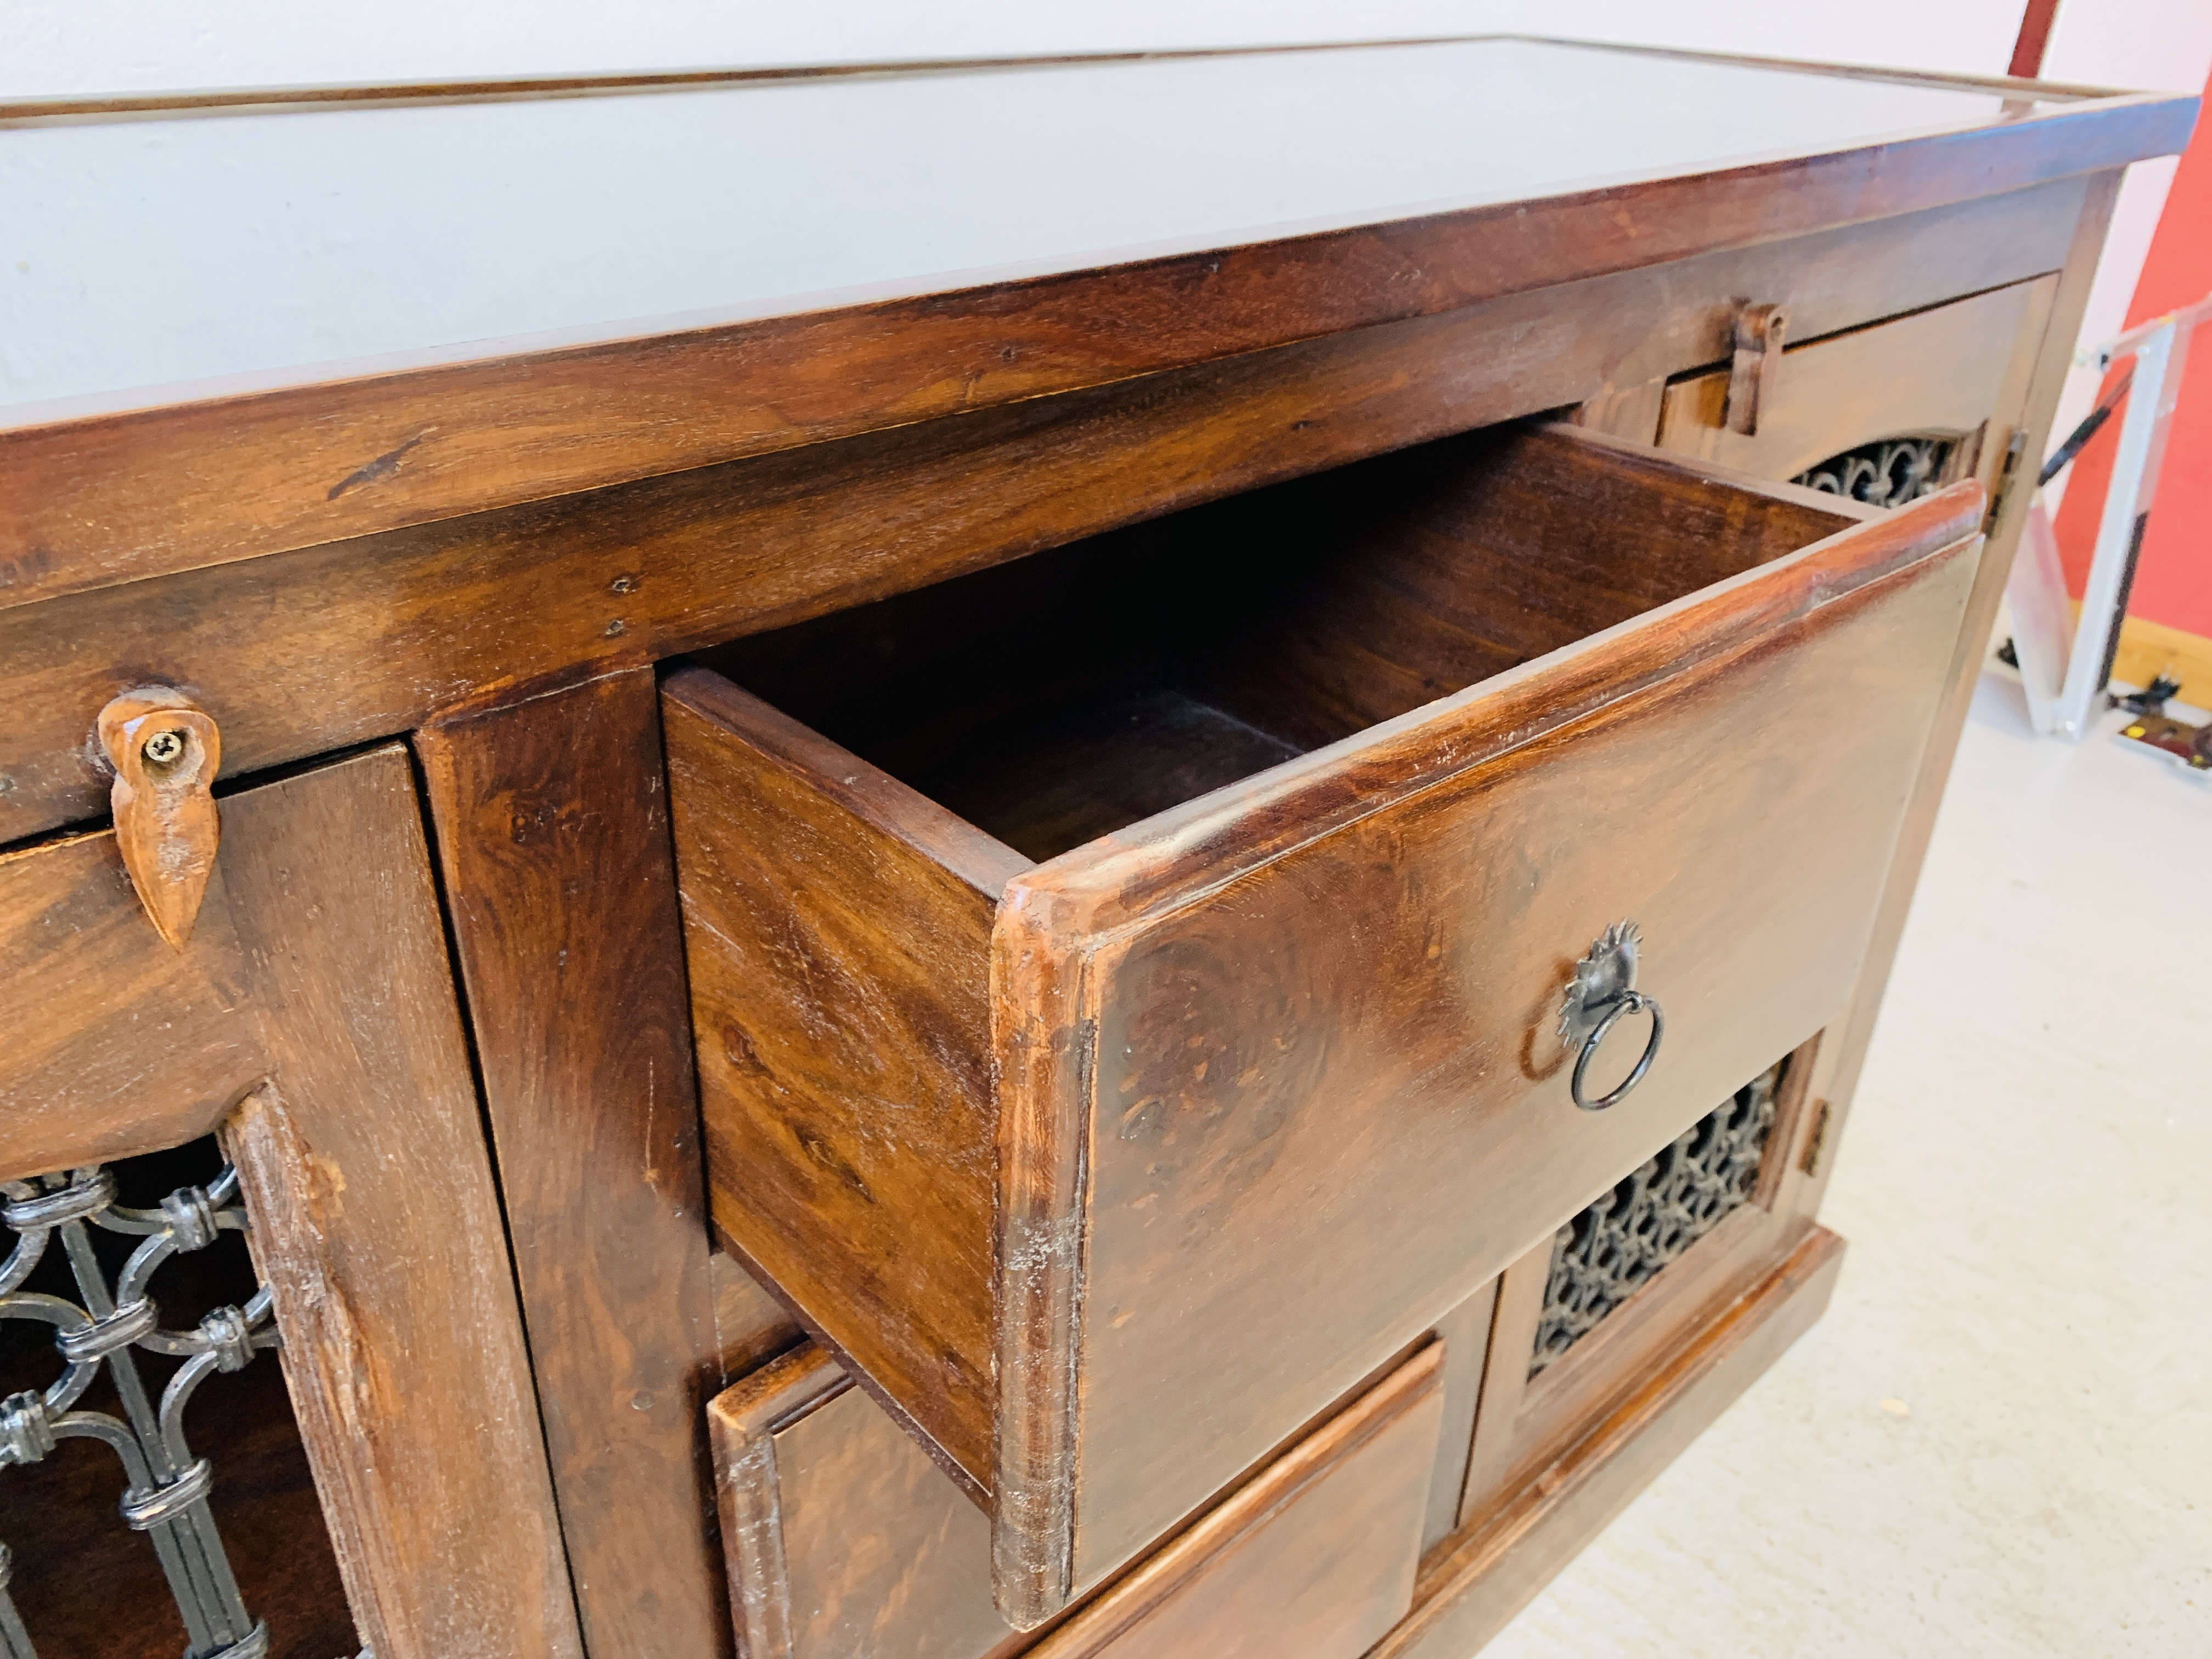 A RUSTIC HARDWOOD COUNTRY & EASTERN STYLE DRESSER BASE, - Image 8 of 9